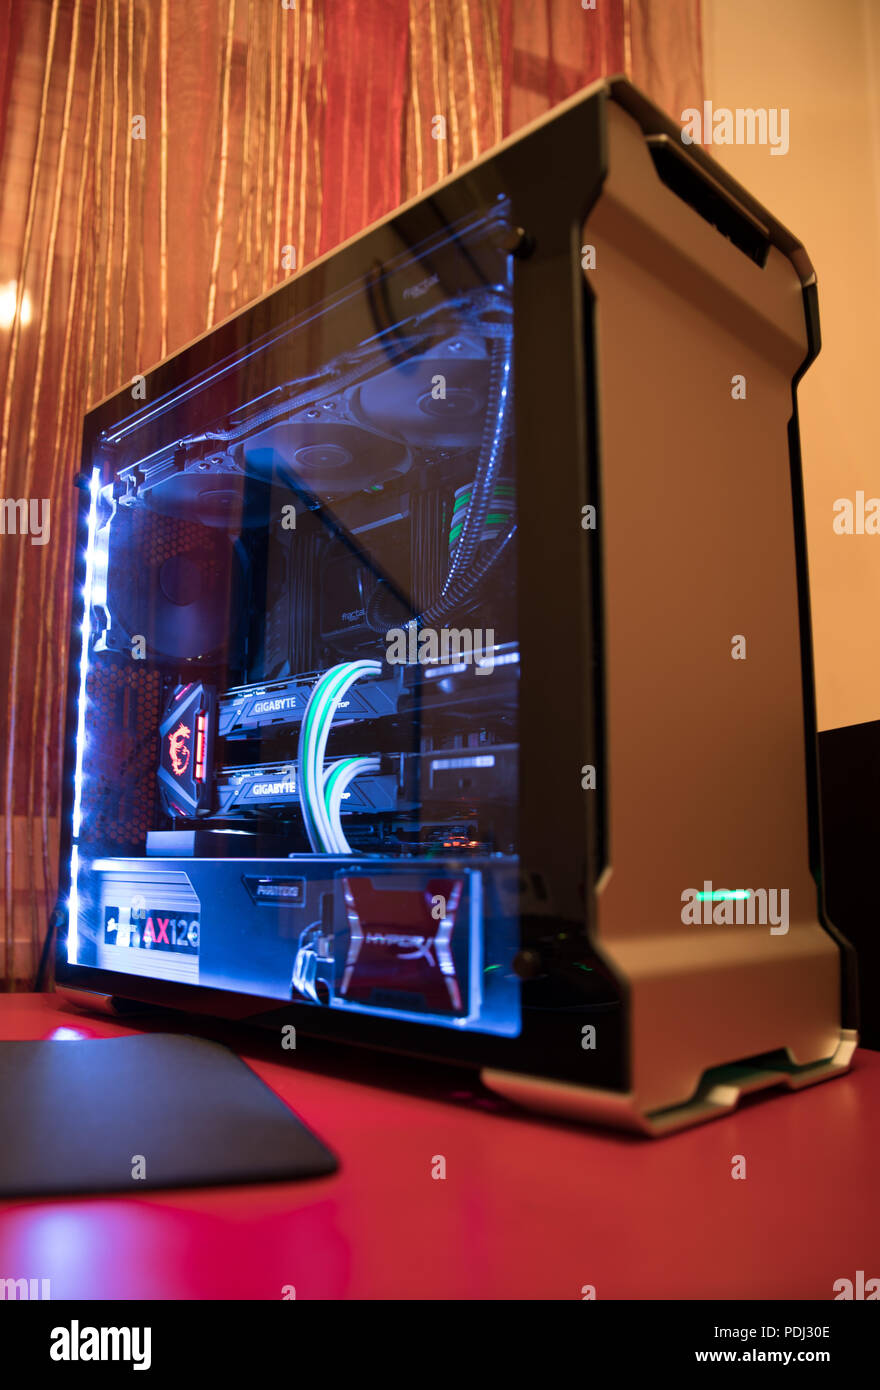 Watercooled Gaming PC Stock Photo 214912446